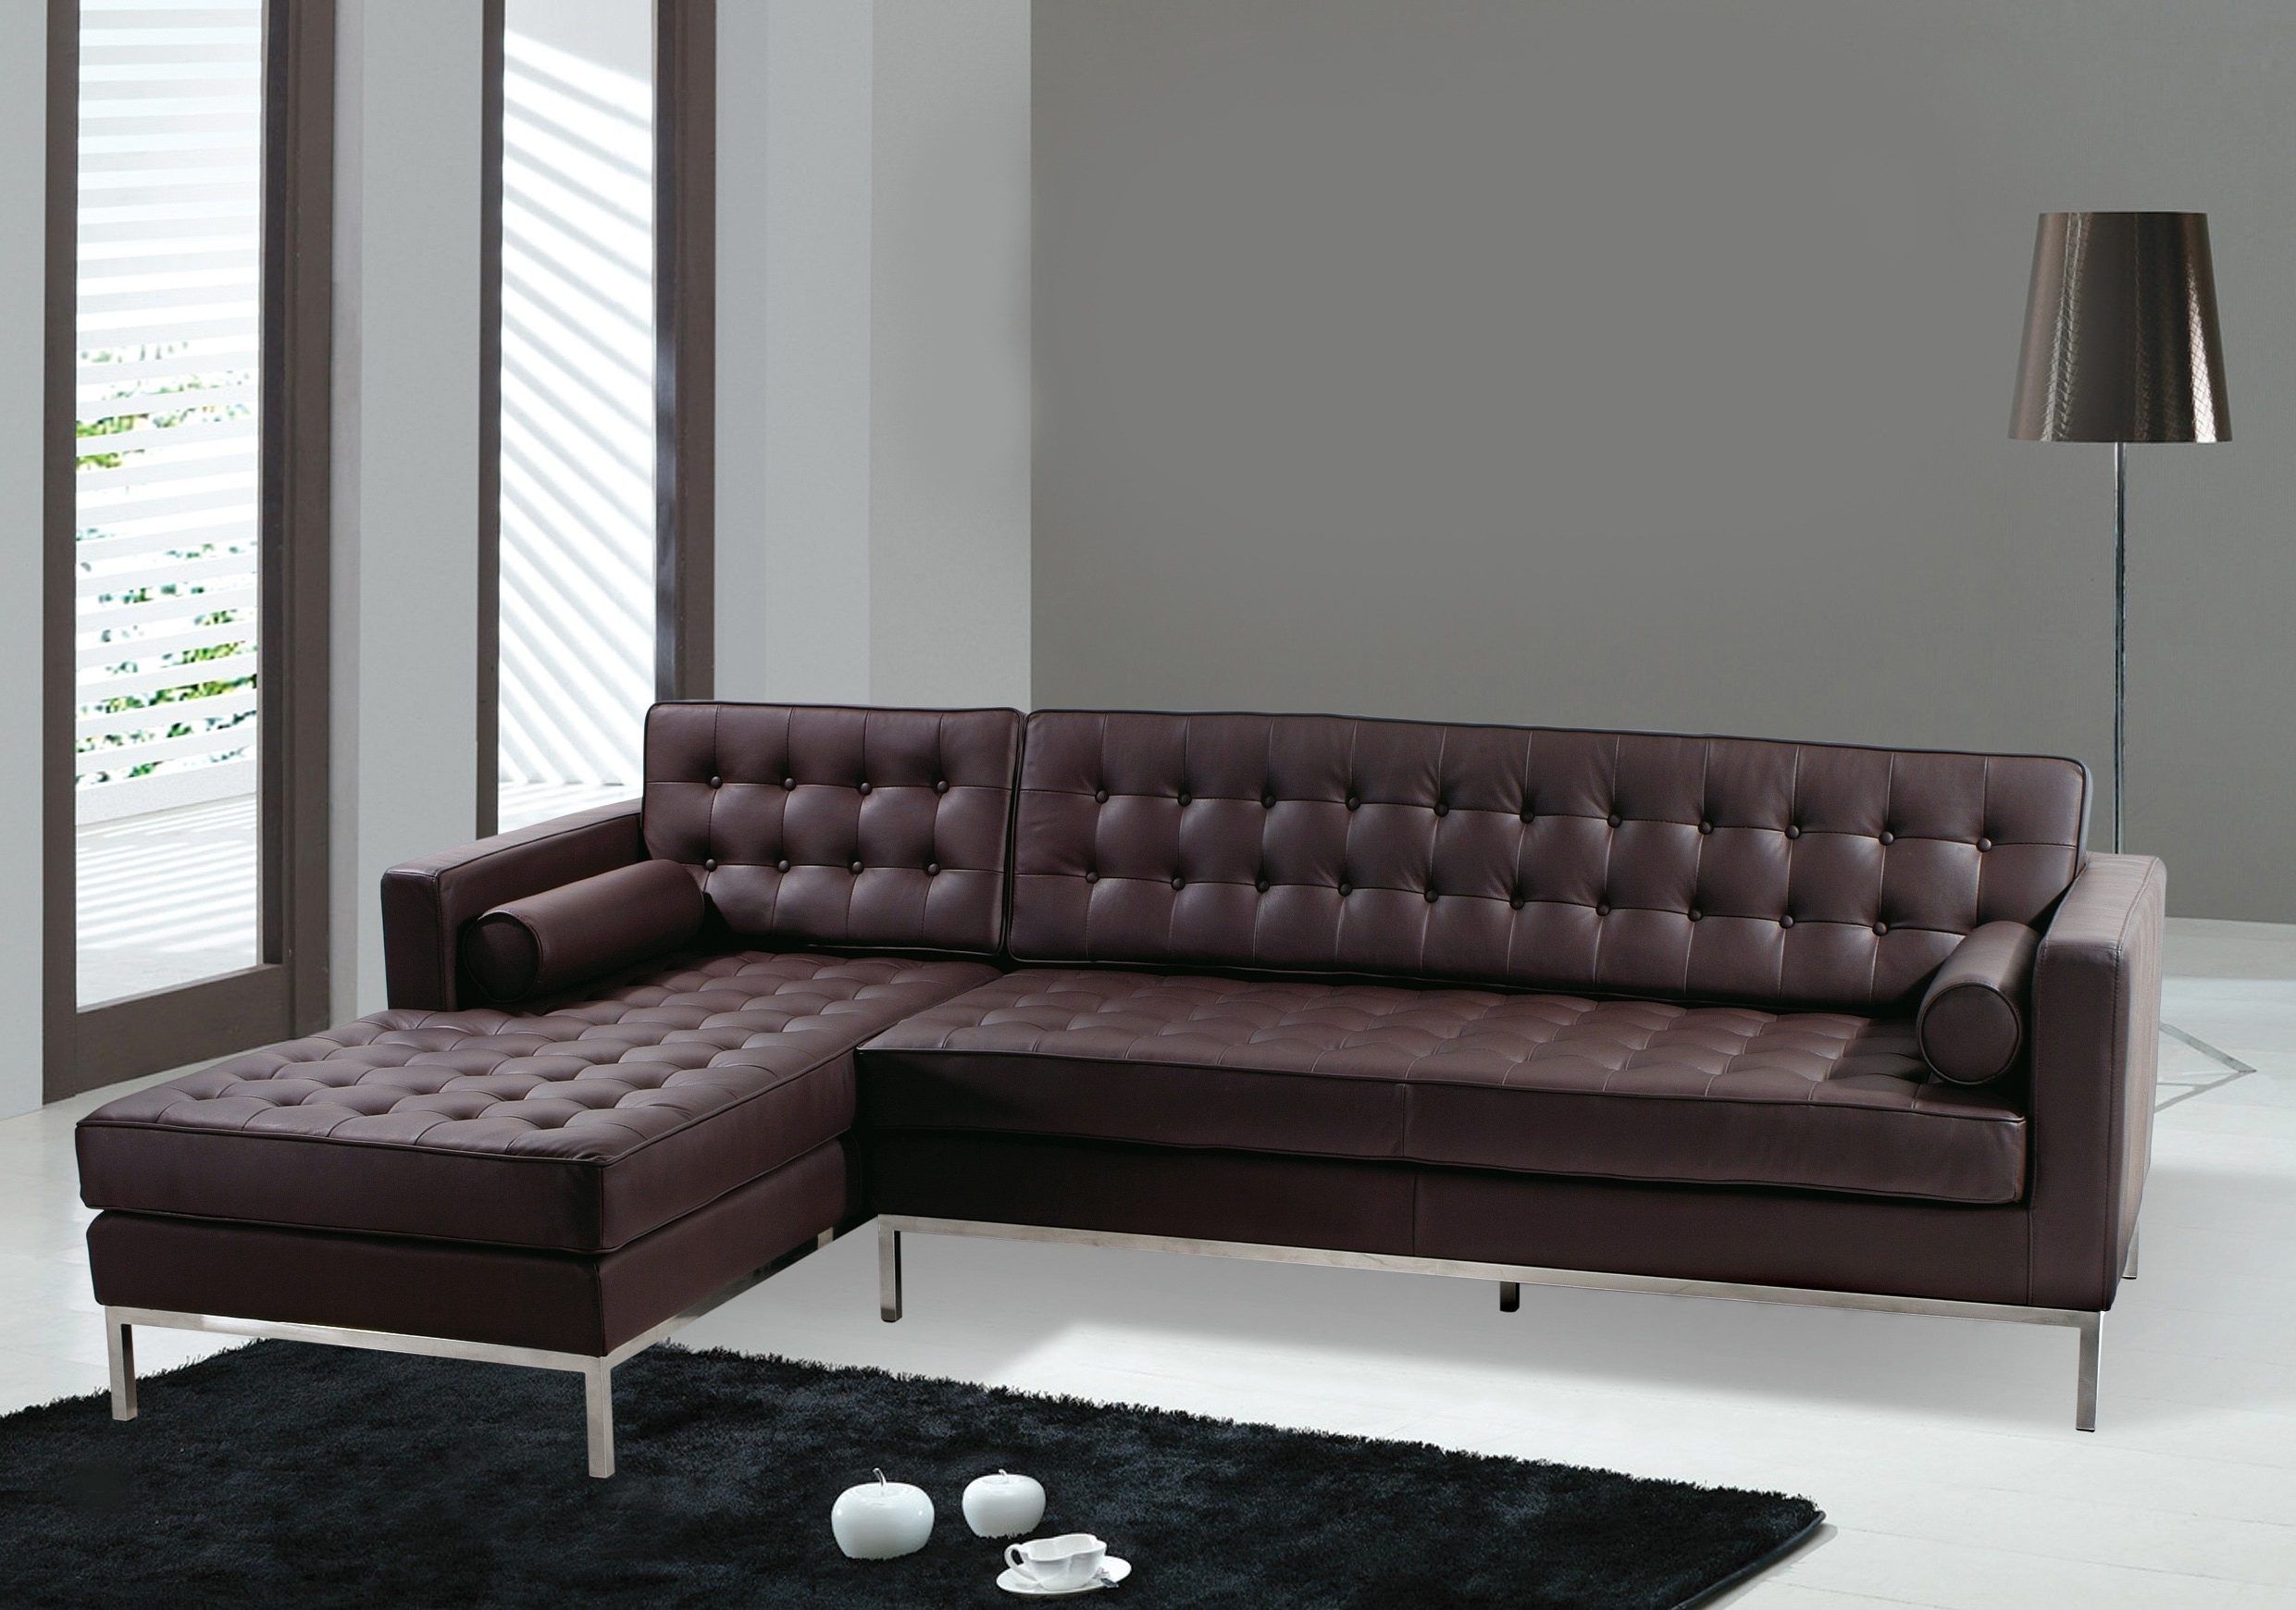 Well Liked Vancouver Bc Sectional Sofas With Regard To Best Of Sectional Sofa Bed Vancouver Bc – Mediasupload (View 19 of 20)